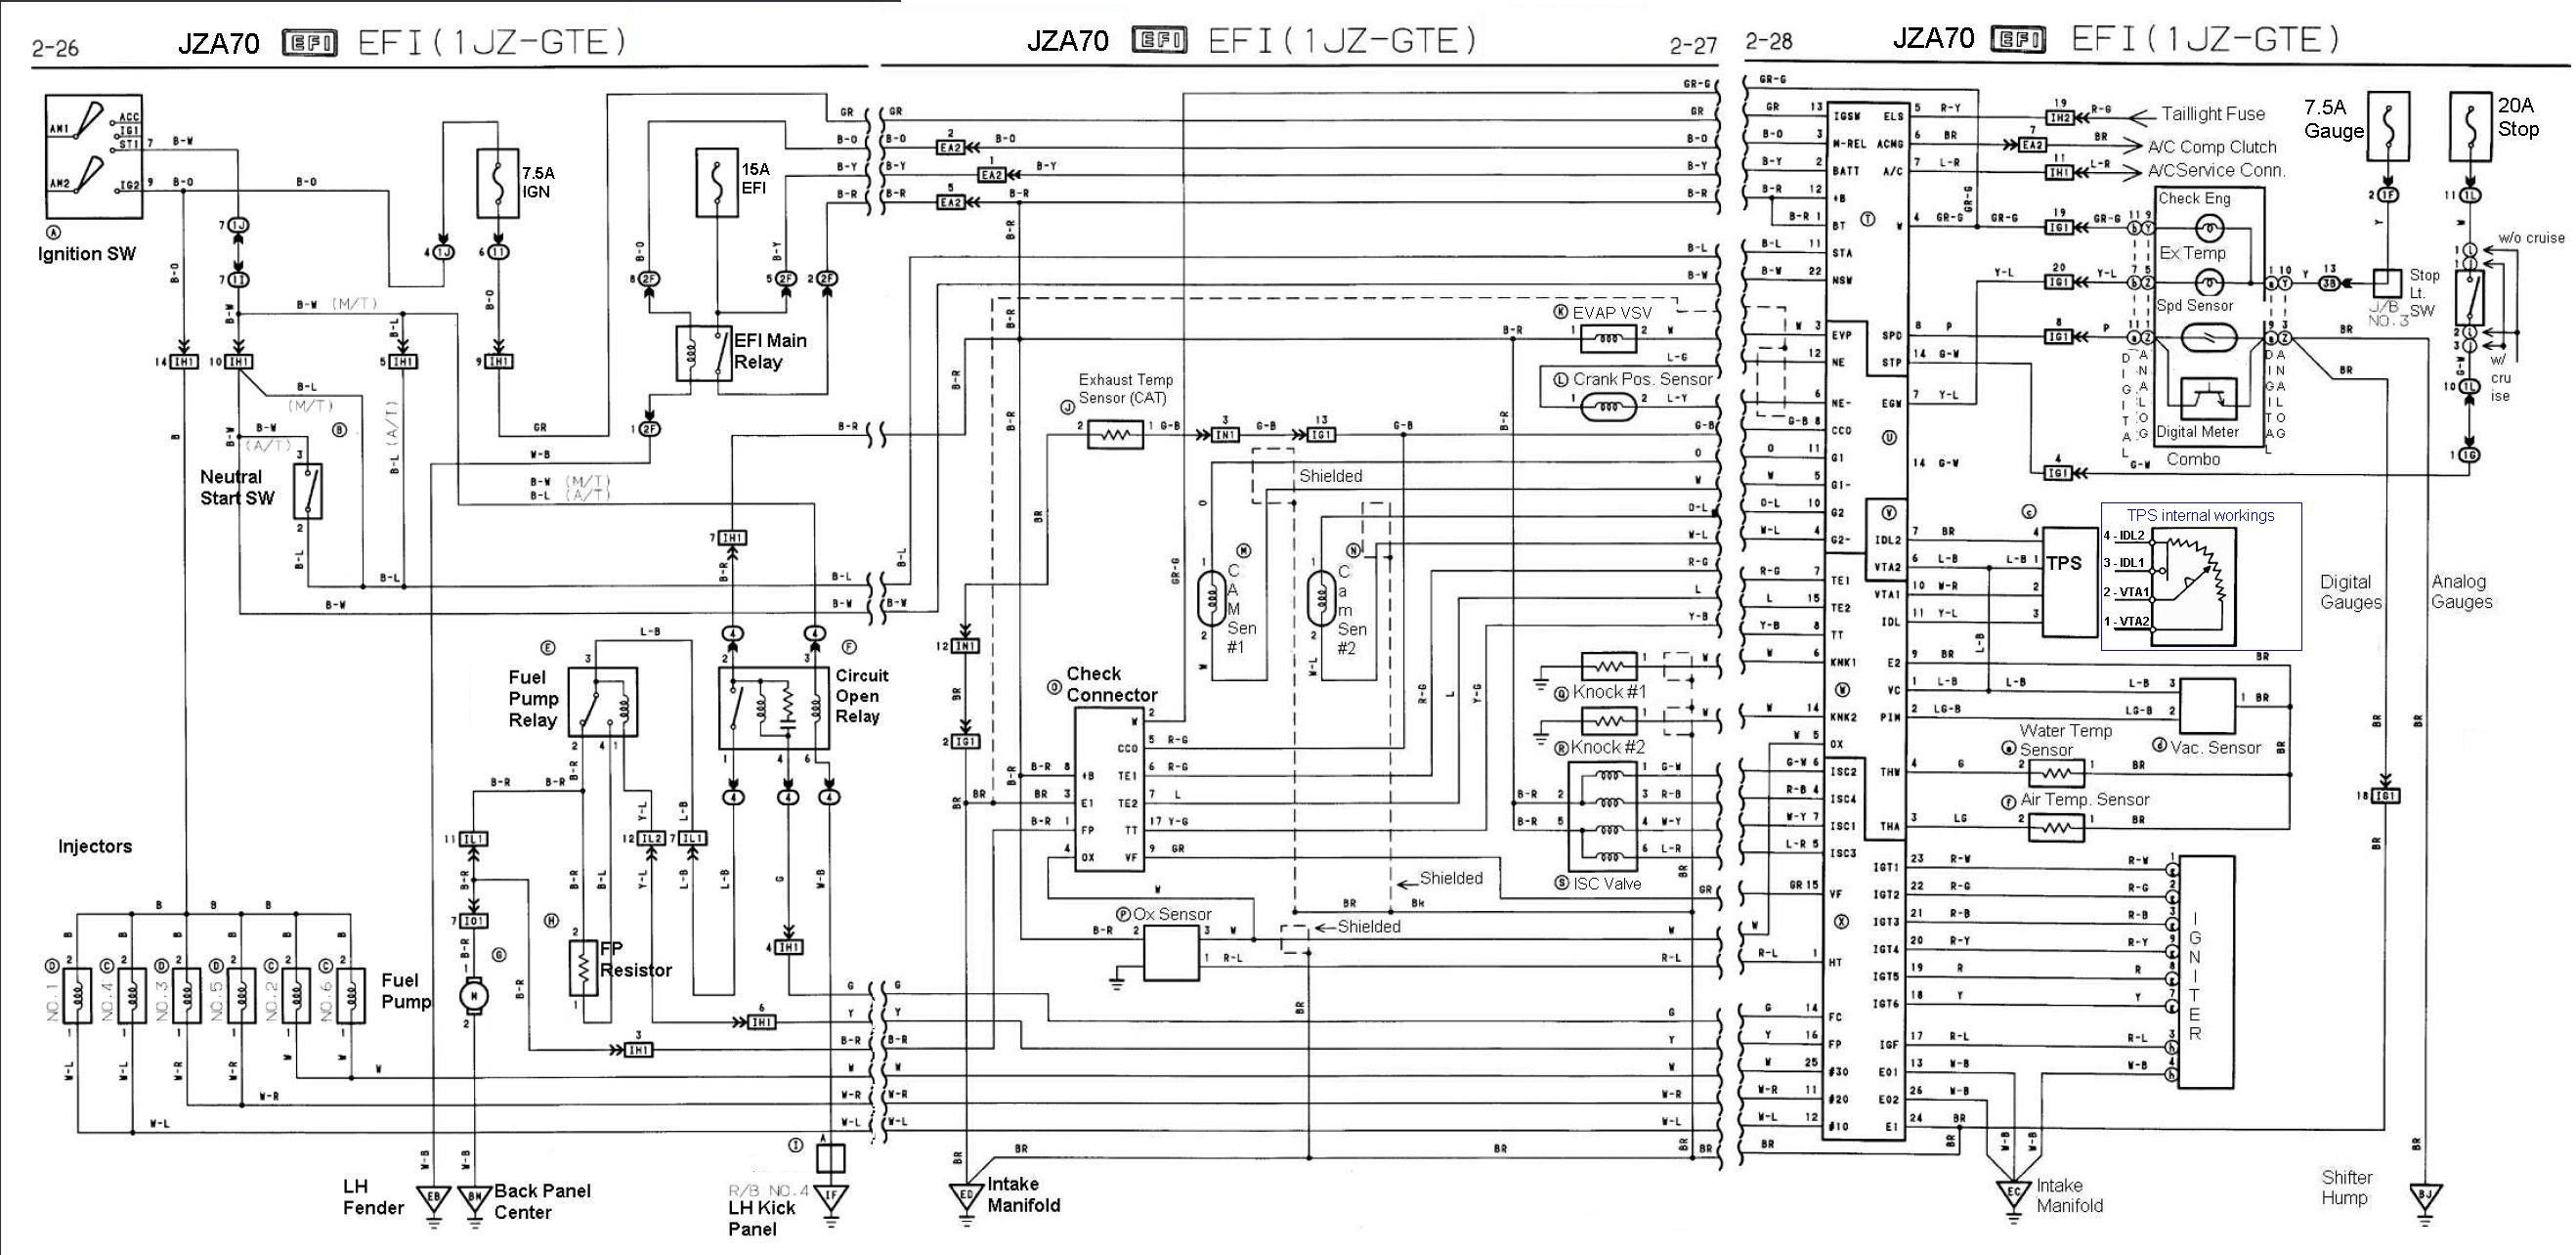 New Bmw E46 318i Wiring Diagram Pdf Diagram Diagramtemplate Diagramsample Bmw E46 Diagram E46 Coupe